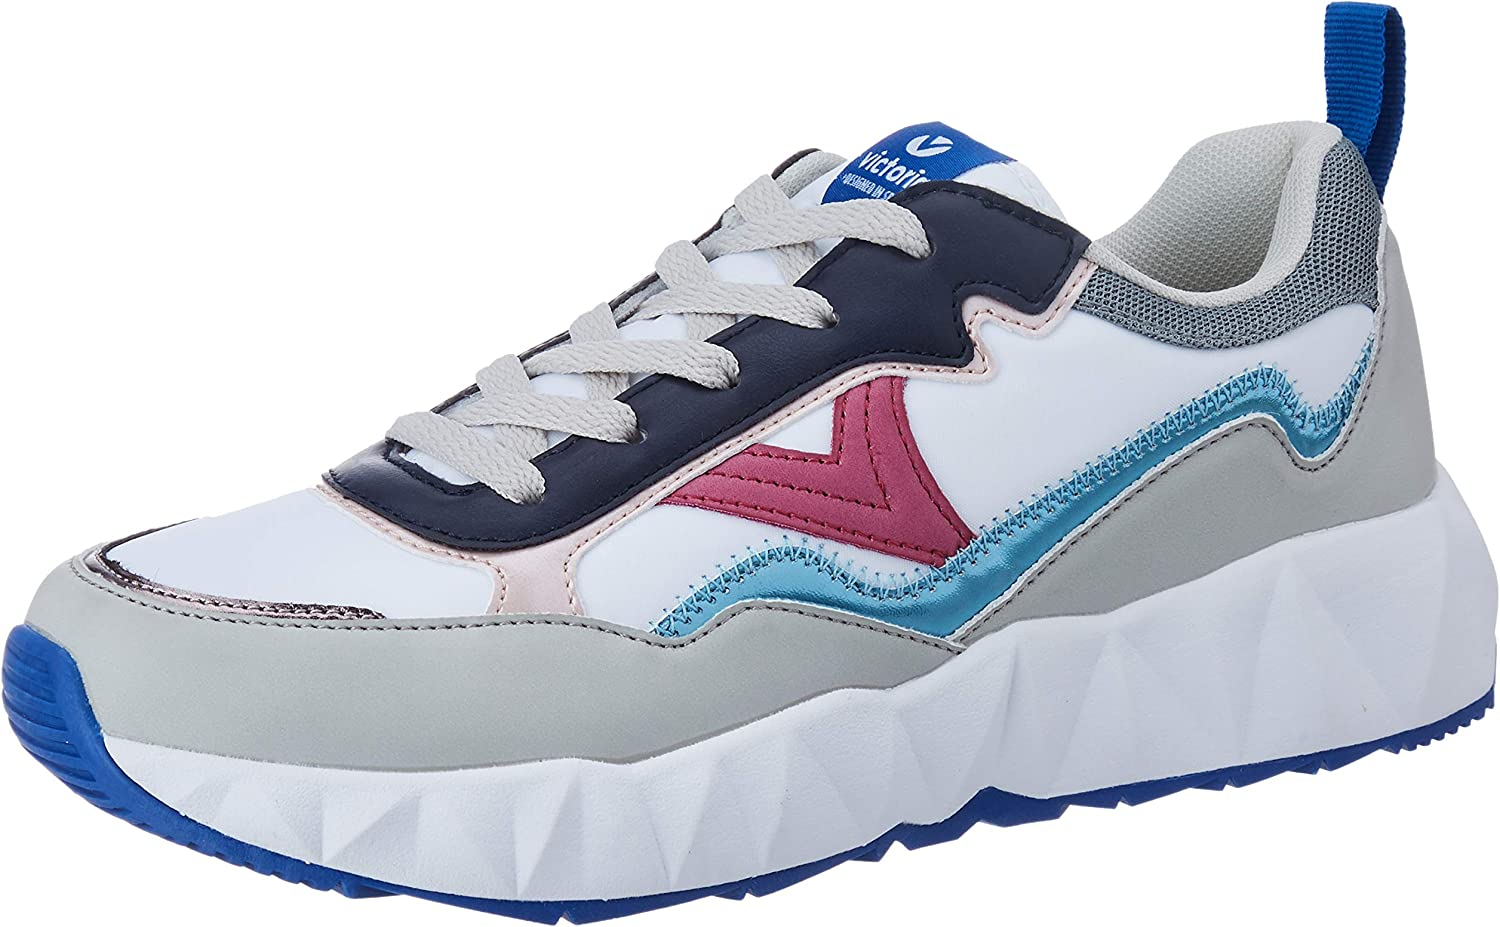 victoria Women's Super beauty product restock quality top Low-Top specialty shop Trainers